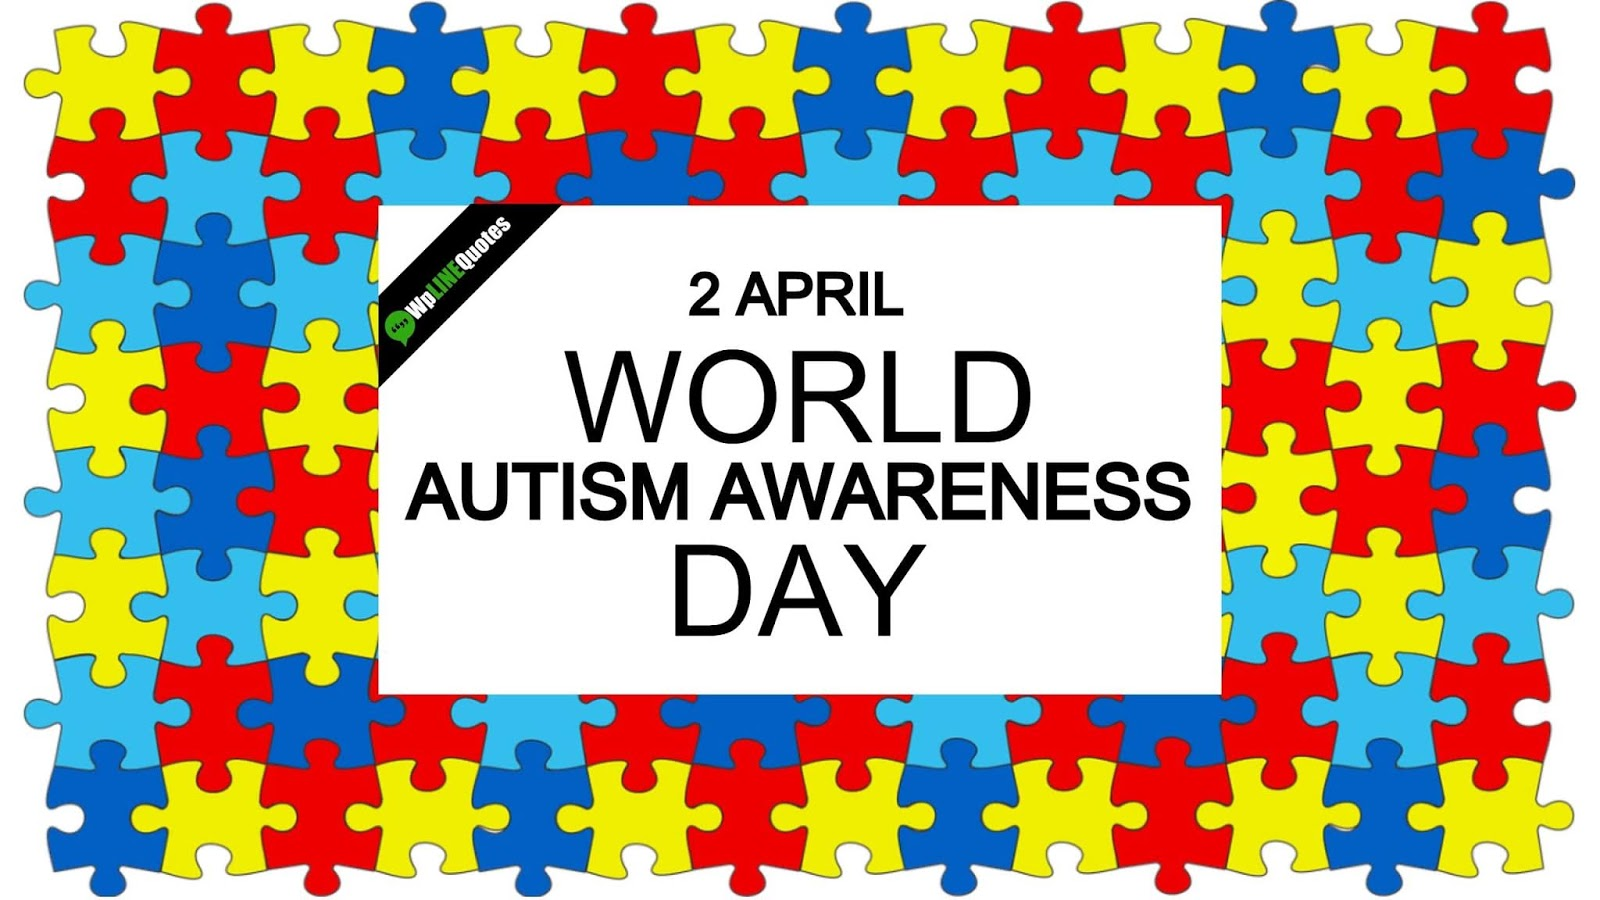 World Autism Awareness Day/Week/Month Quotes, Theme, Activities, Ideas, Messages, Images